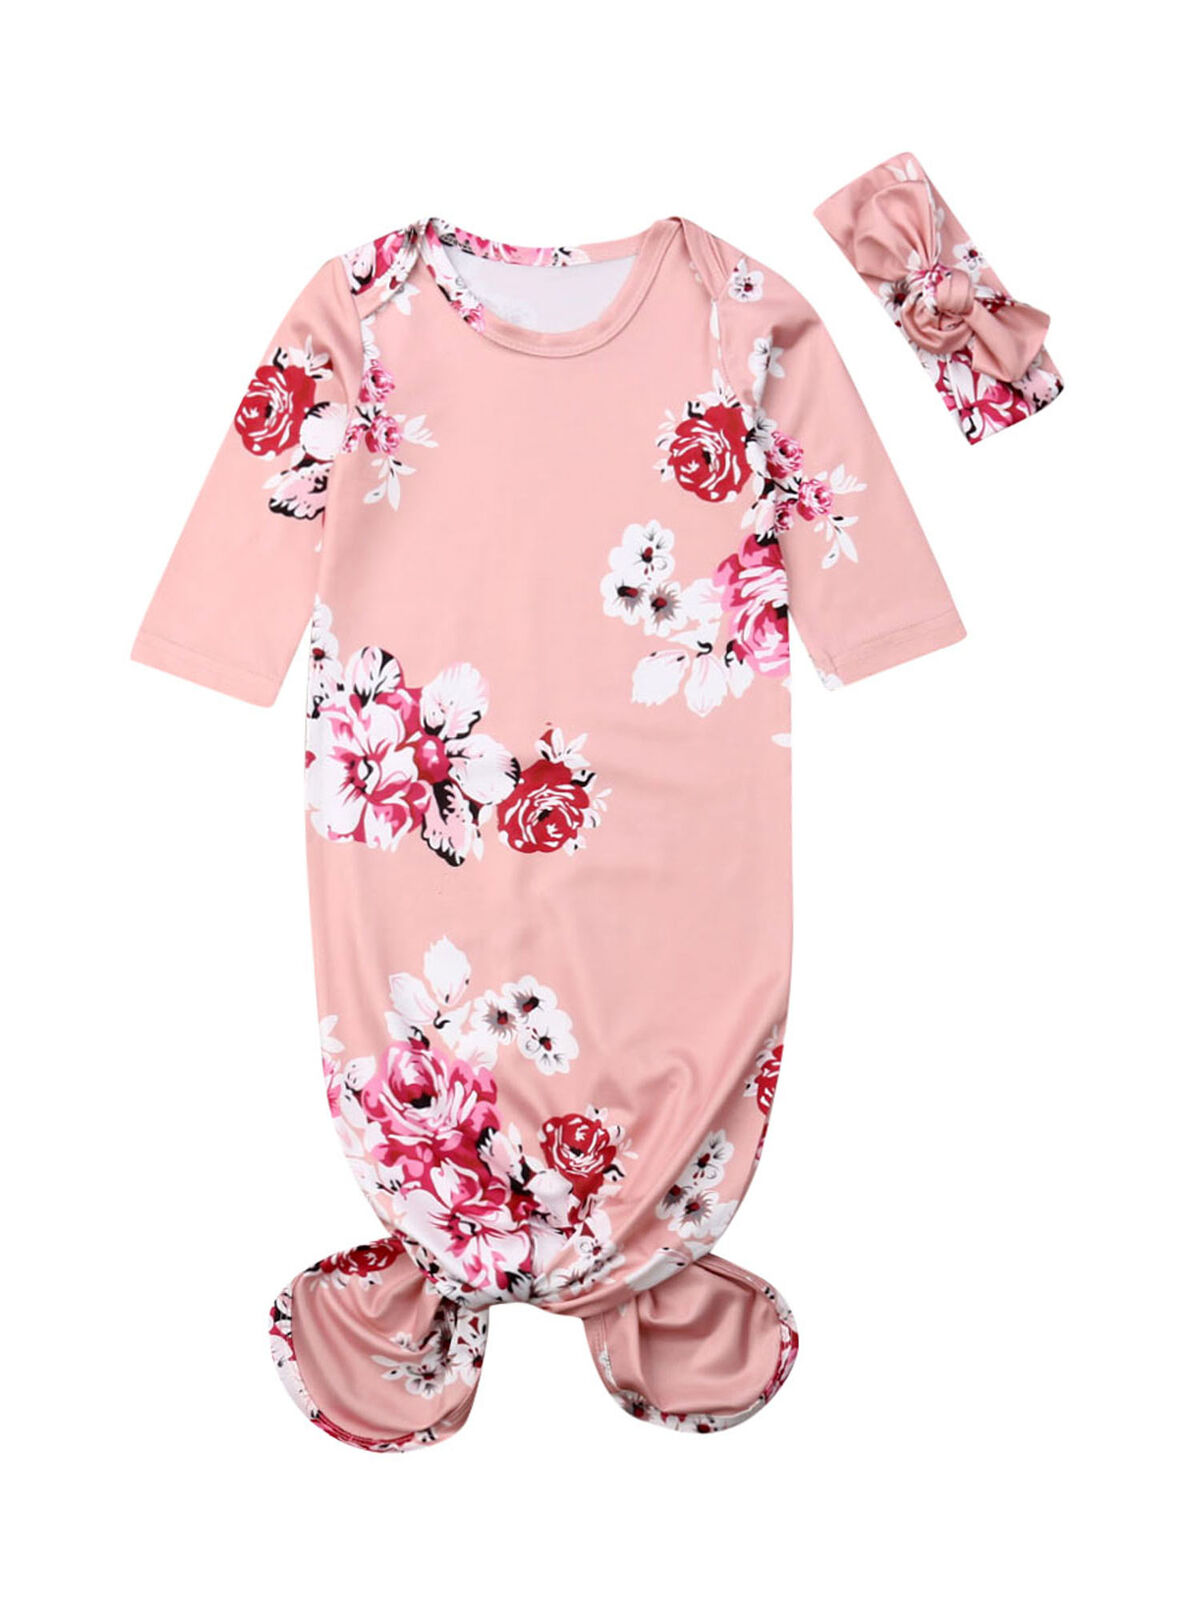 Infant Baby Gowns Newborn Girls Boys Sleep Sack Floral Nightgowns Headbands Pajamas Outfits